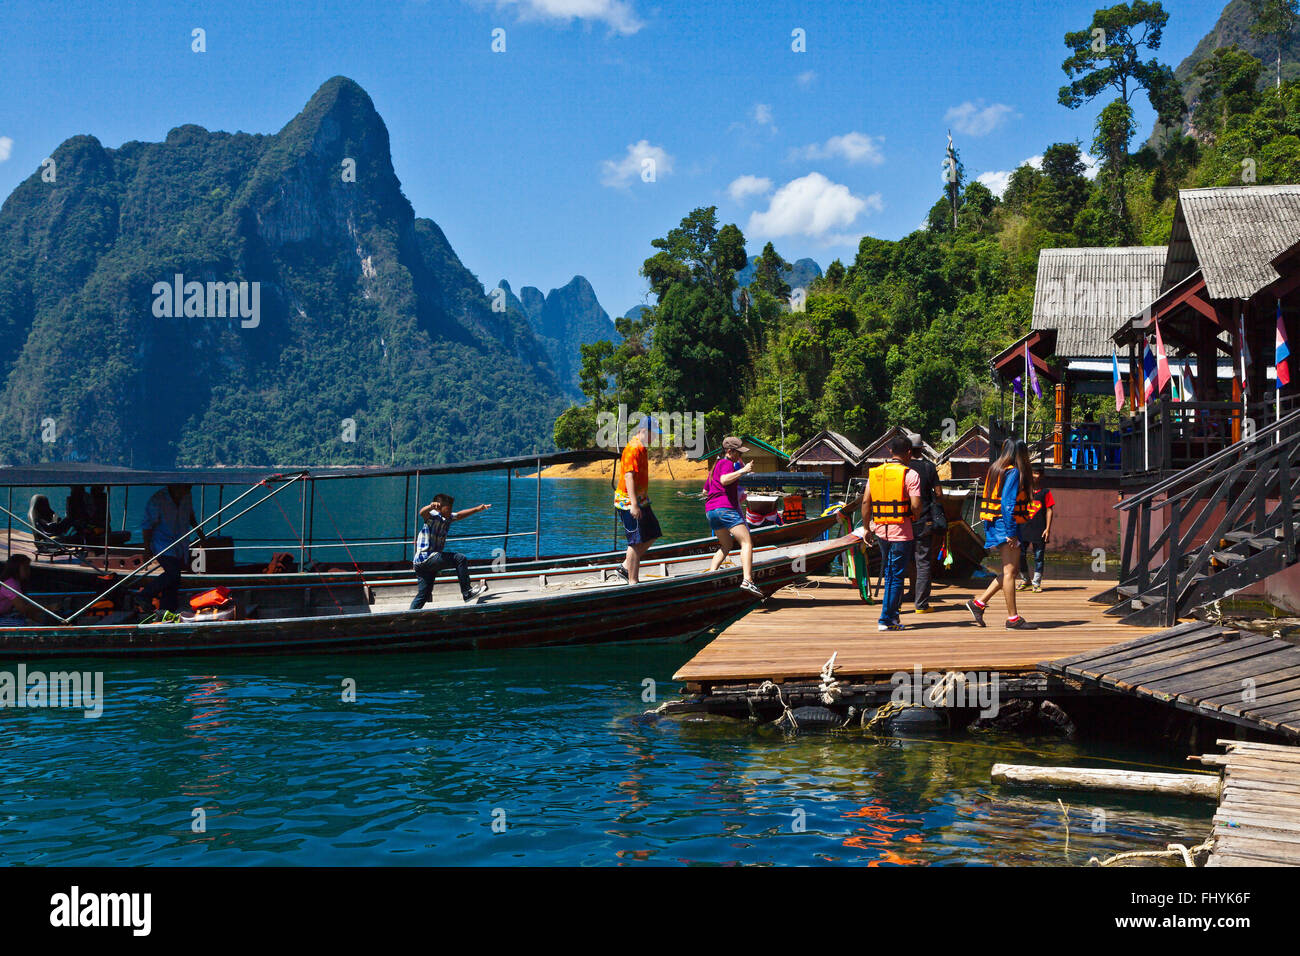 Guests arrive at NANG PRAI RAFT HOUSE on CHEOW EN LAKE in the KHAO SOK NATIONAL PARK - THAILAND - Stock Image